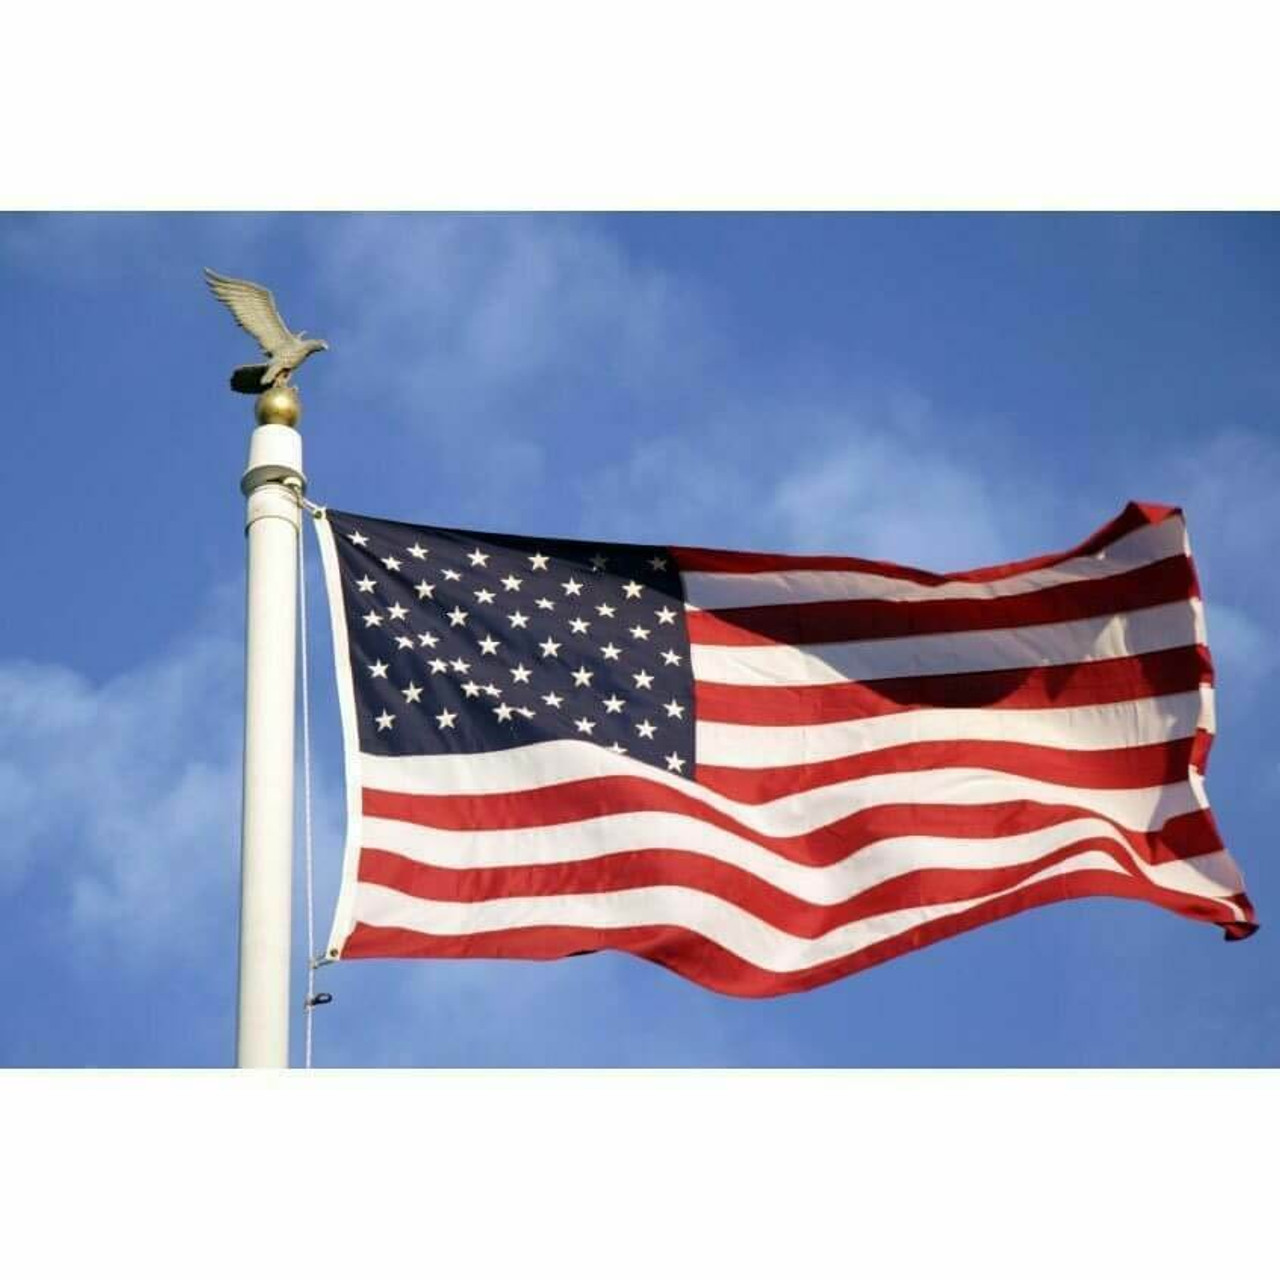 Nylon American flag flying on an outdoor flagpole 30' tall on a sunny fall day in Omaha.